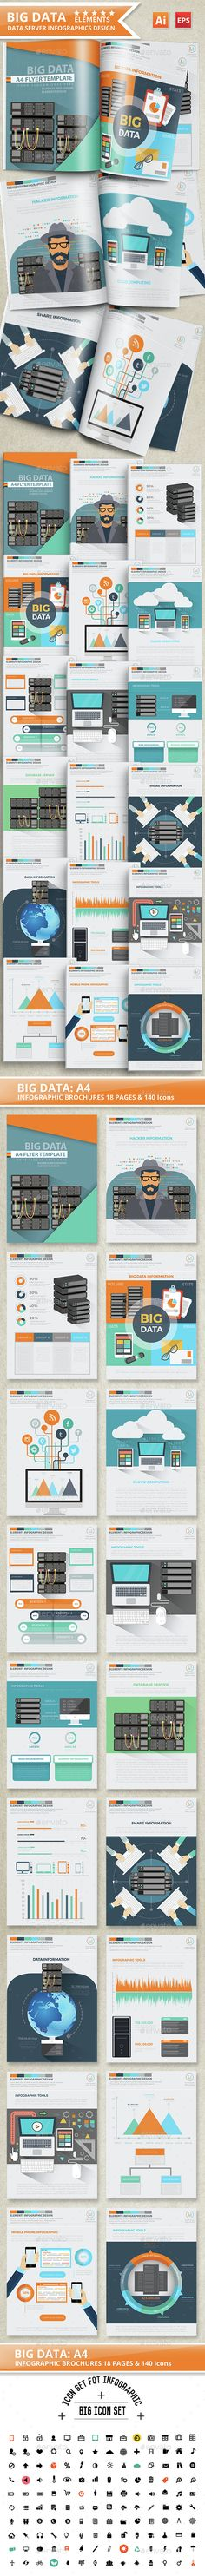 Big Data Infographics Design Template Vector EPS, AI. Download here: http://graphicriver.net/item/big-data-infographics-design/14778435?ref=ksioks